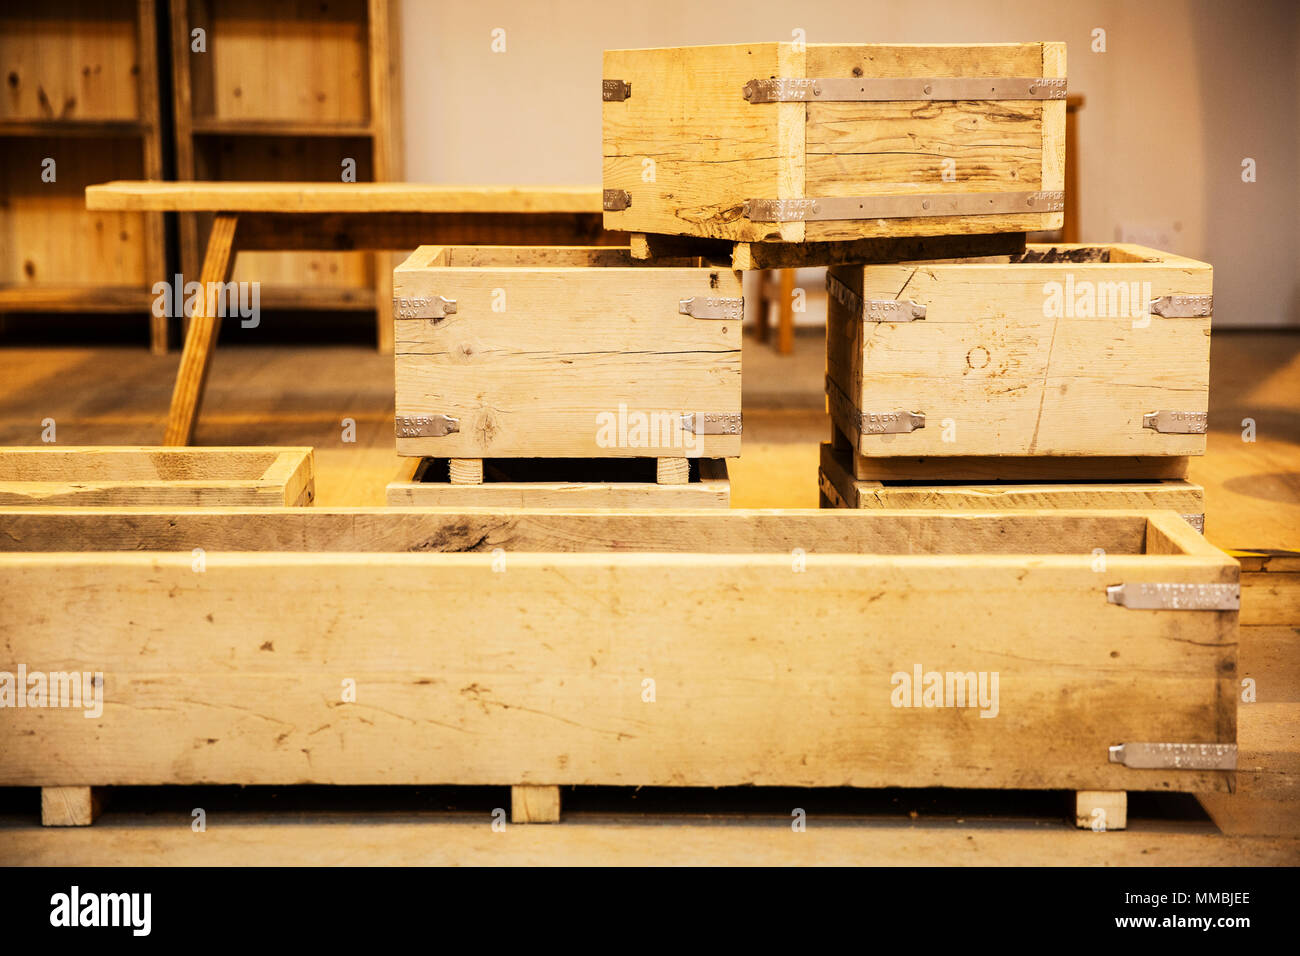 Stack of wooden crates in various sizes in a warehouse. - Stock Image